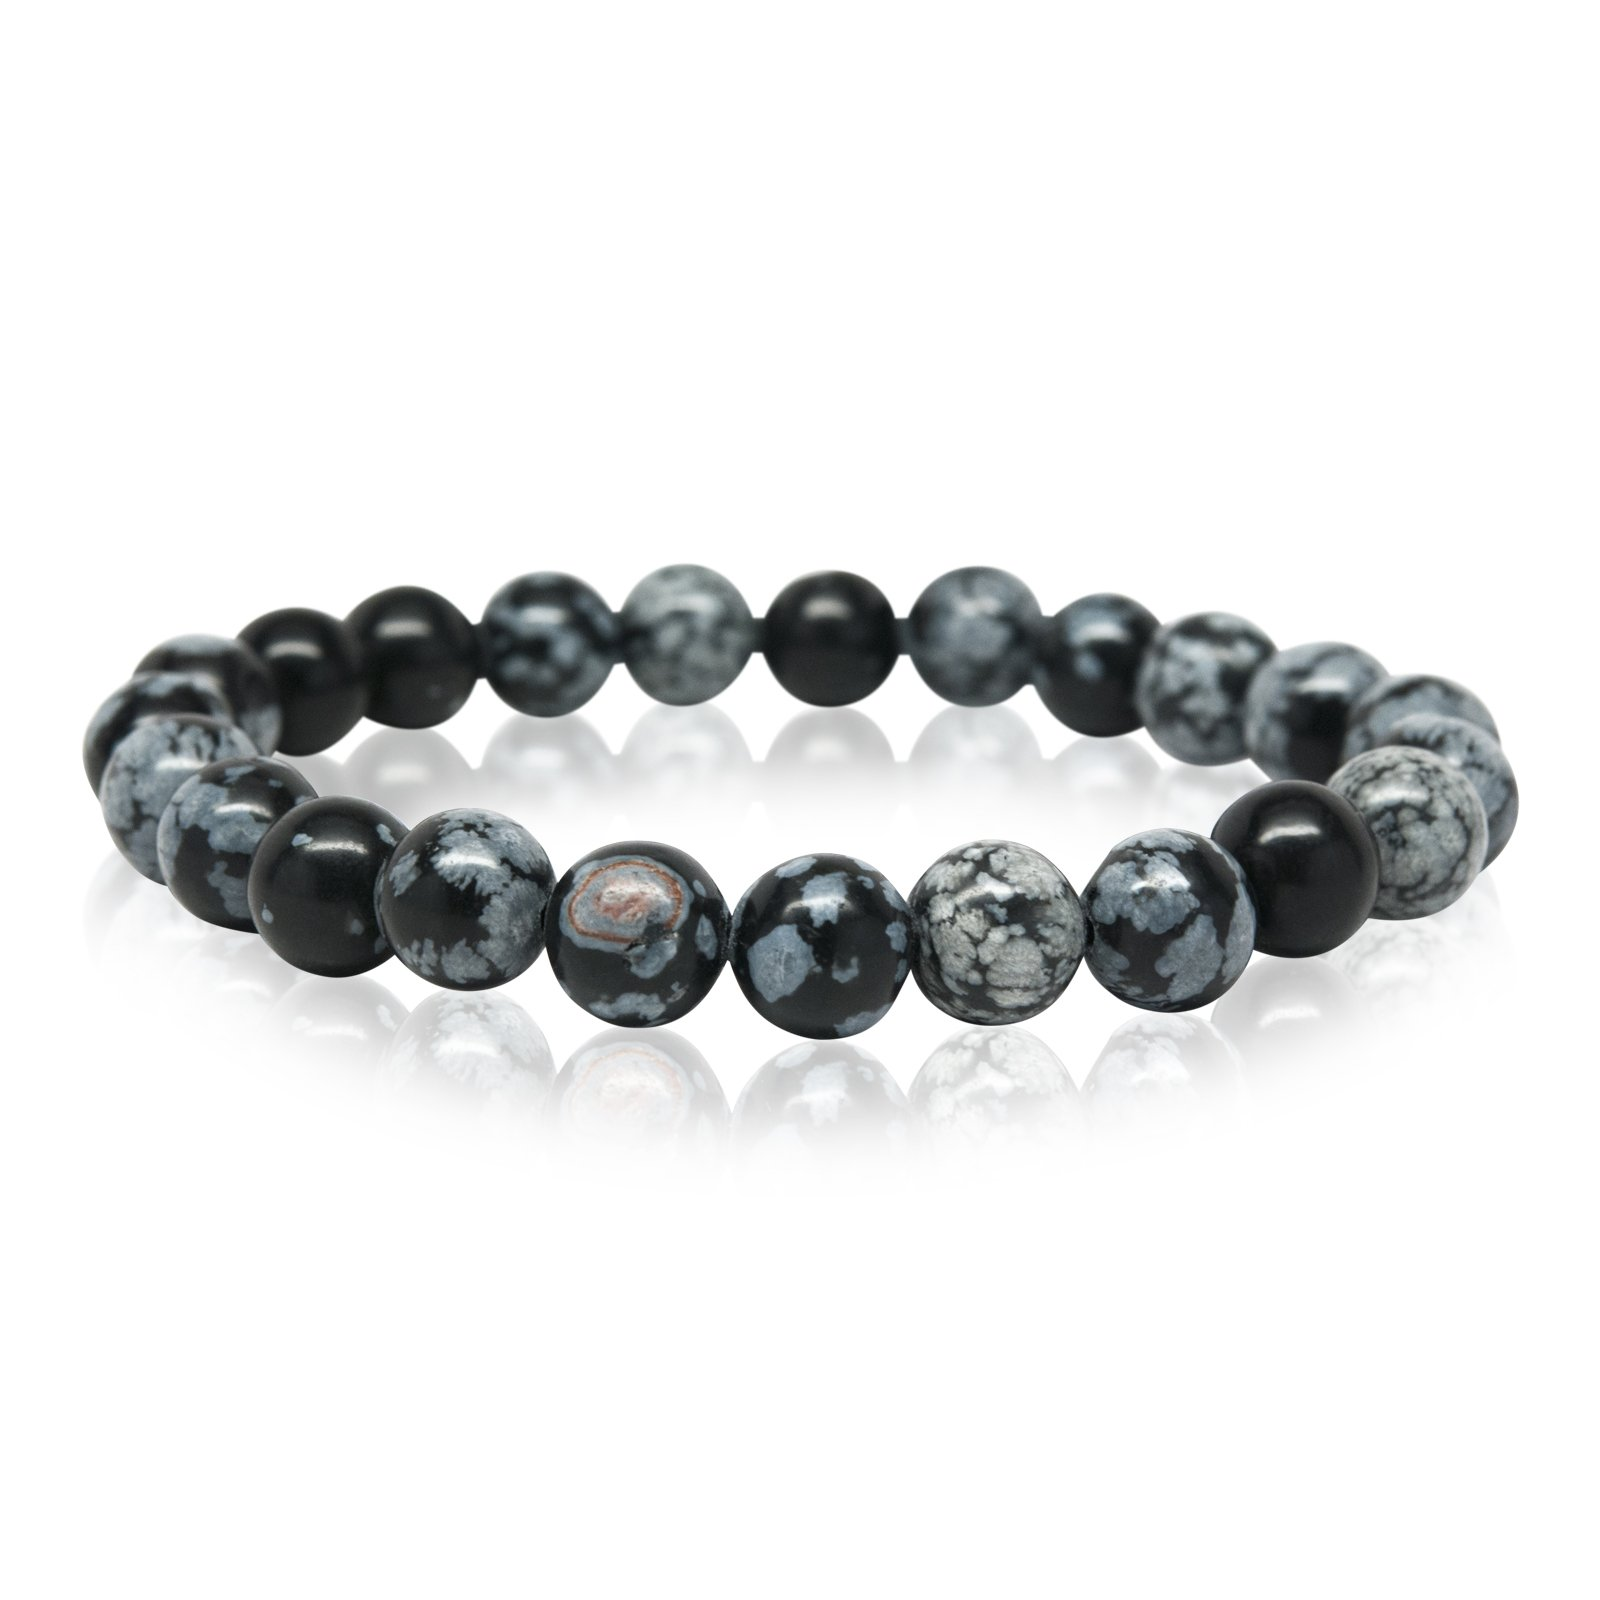 Orti Jewelry Wrist Beads Semiprecious Stone Bracelet - Real 8mm Snowflake Obsidian Gemstones - for Chakra Healing and Balancing, fits Men and Women 7 inch - Adds Boho Charm to Any Outfit, by